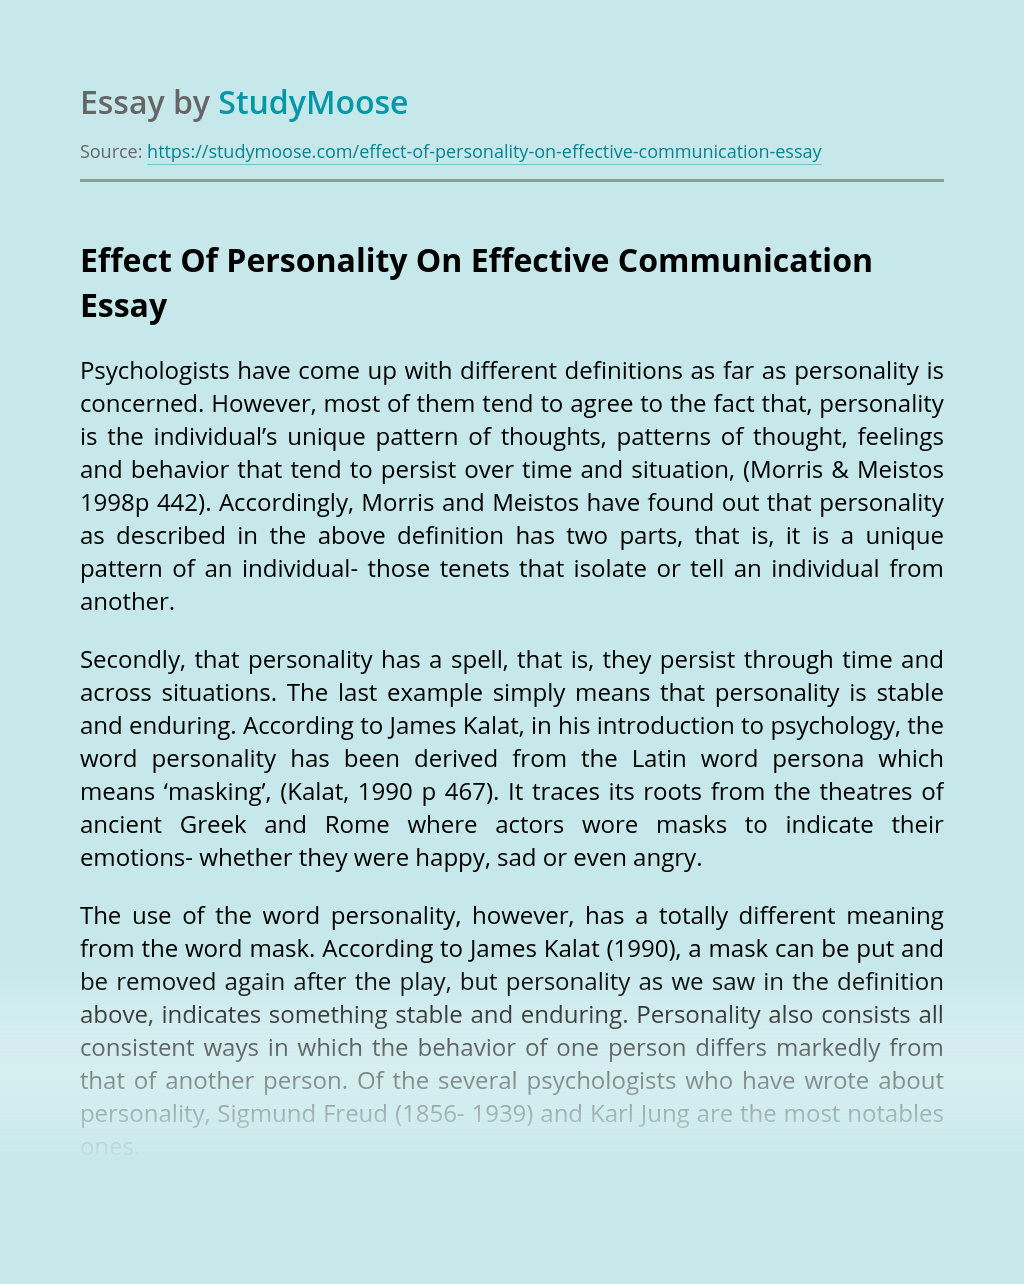 Effect Of Personality On Effective Communication